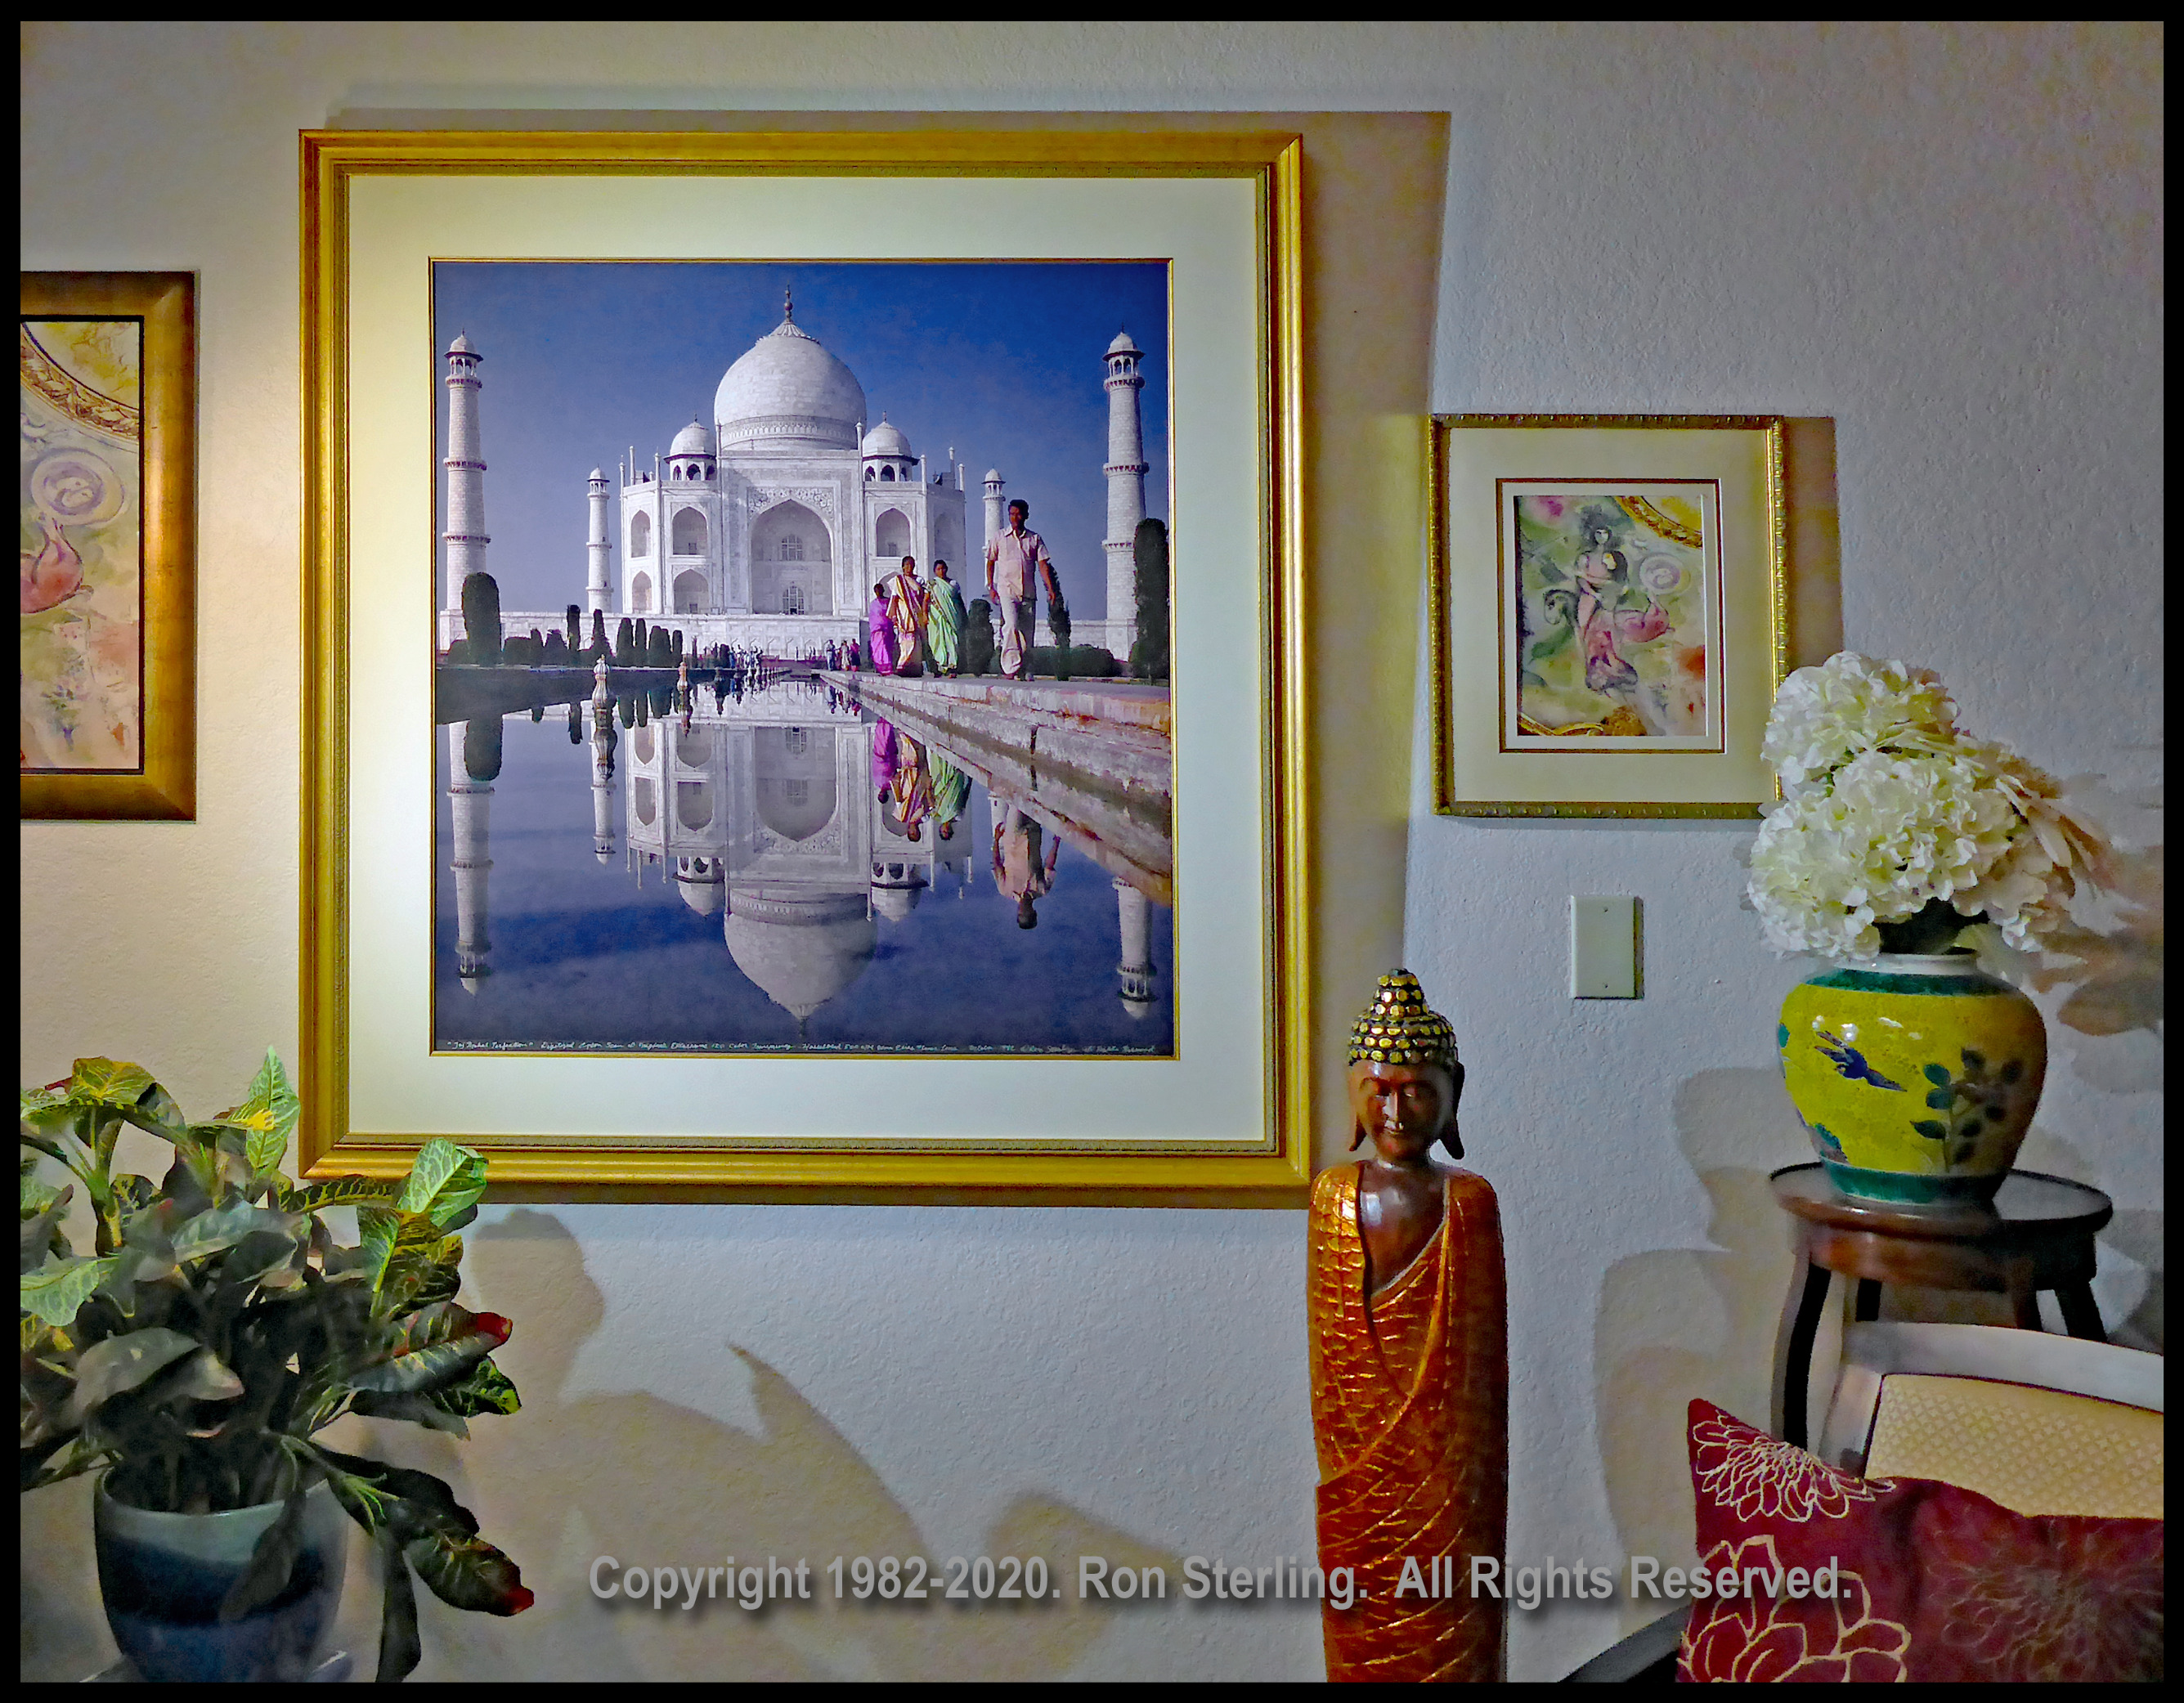 VF Orig. Print Signed by Photographer of the Taj Mahal, October 1982.